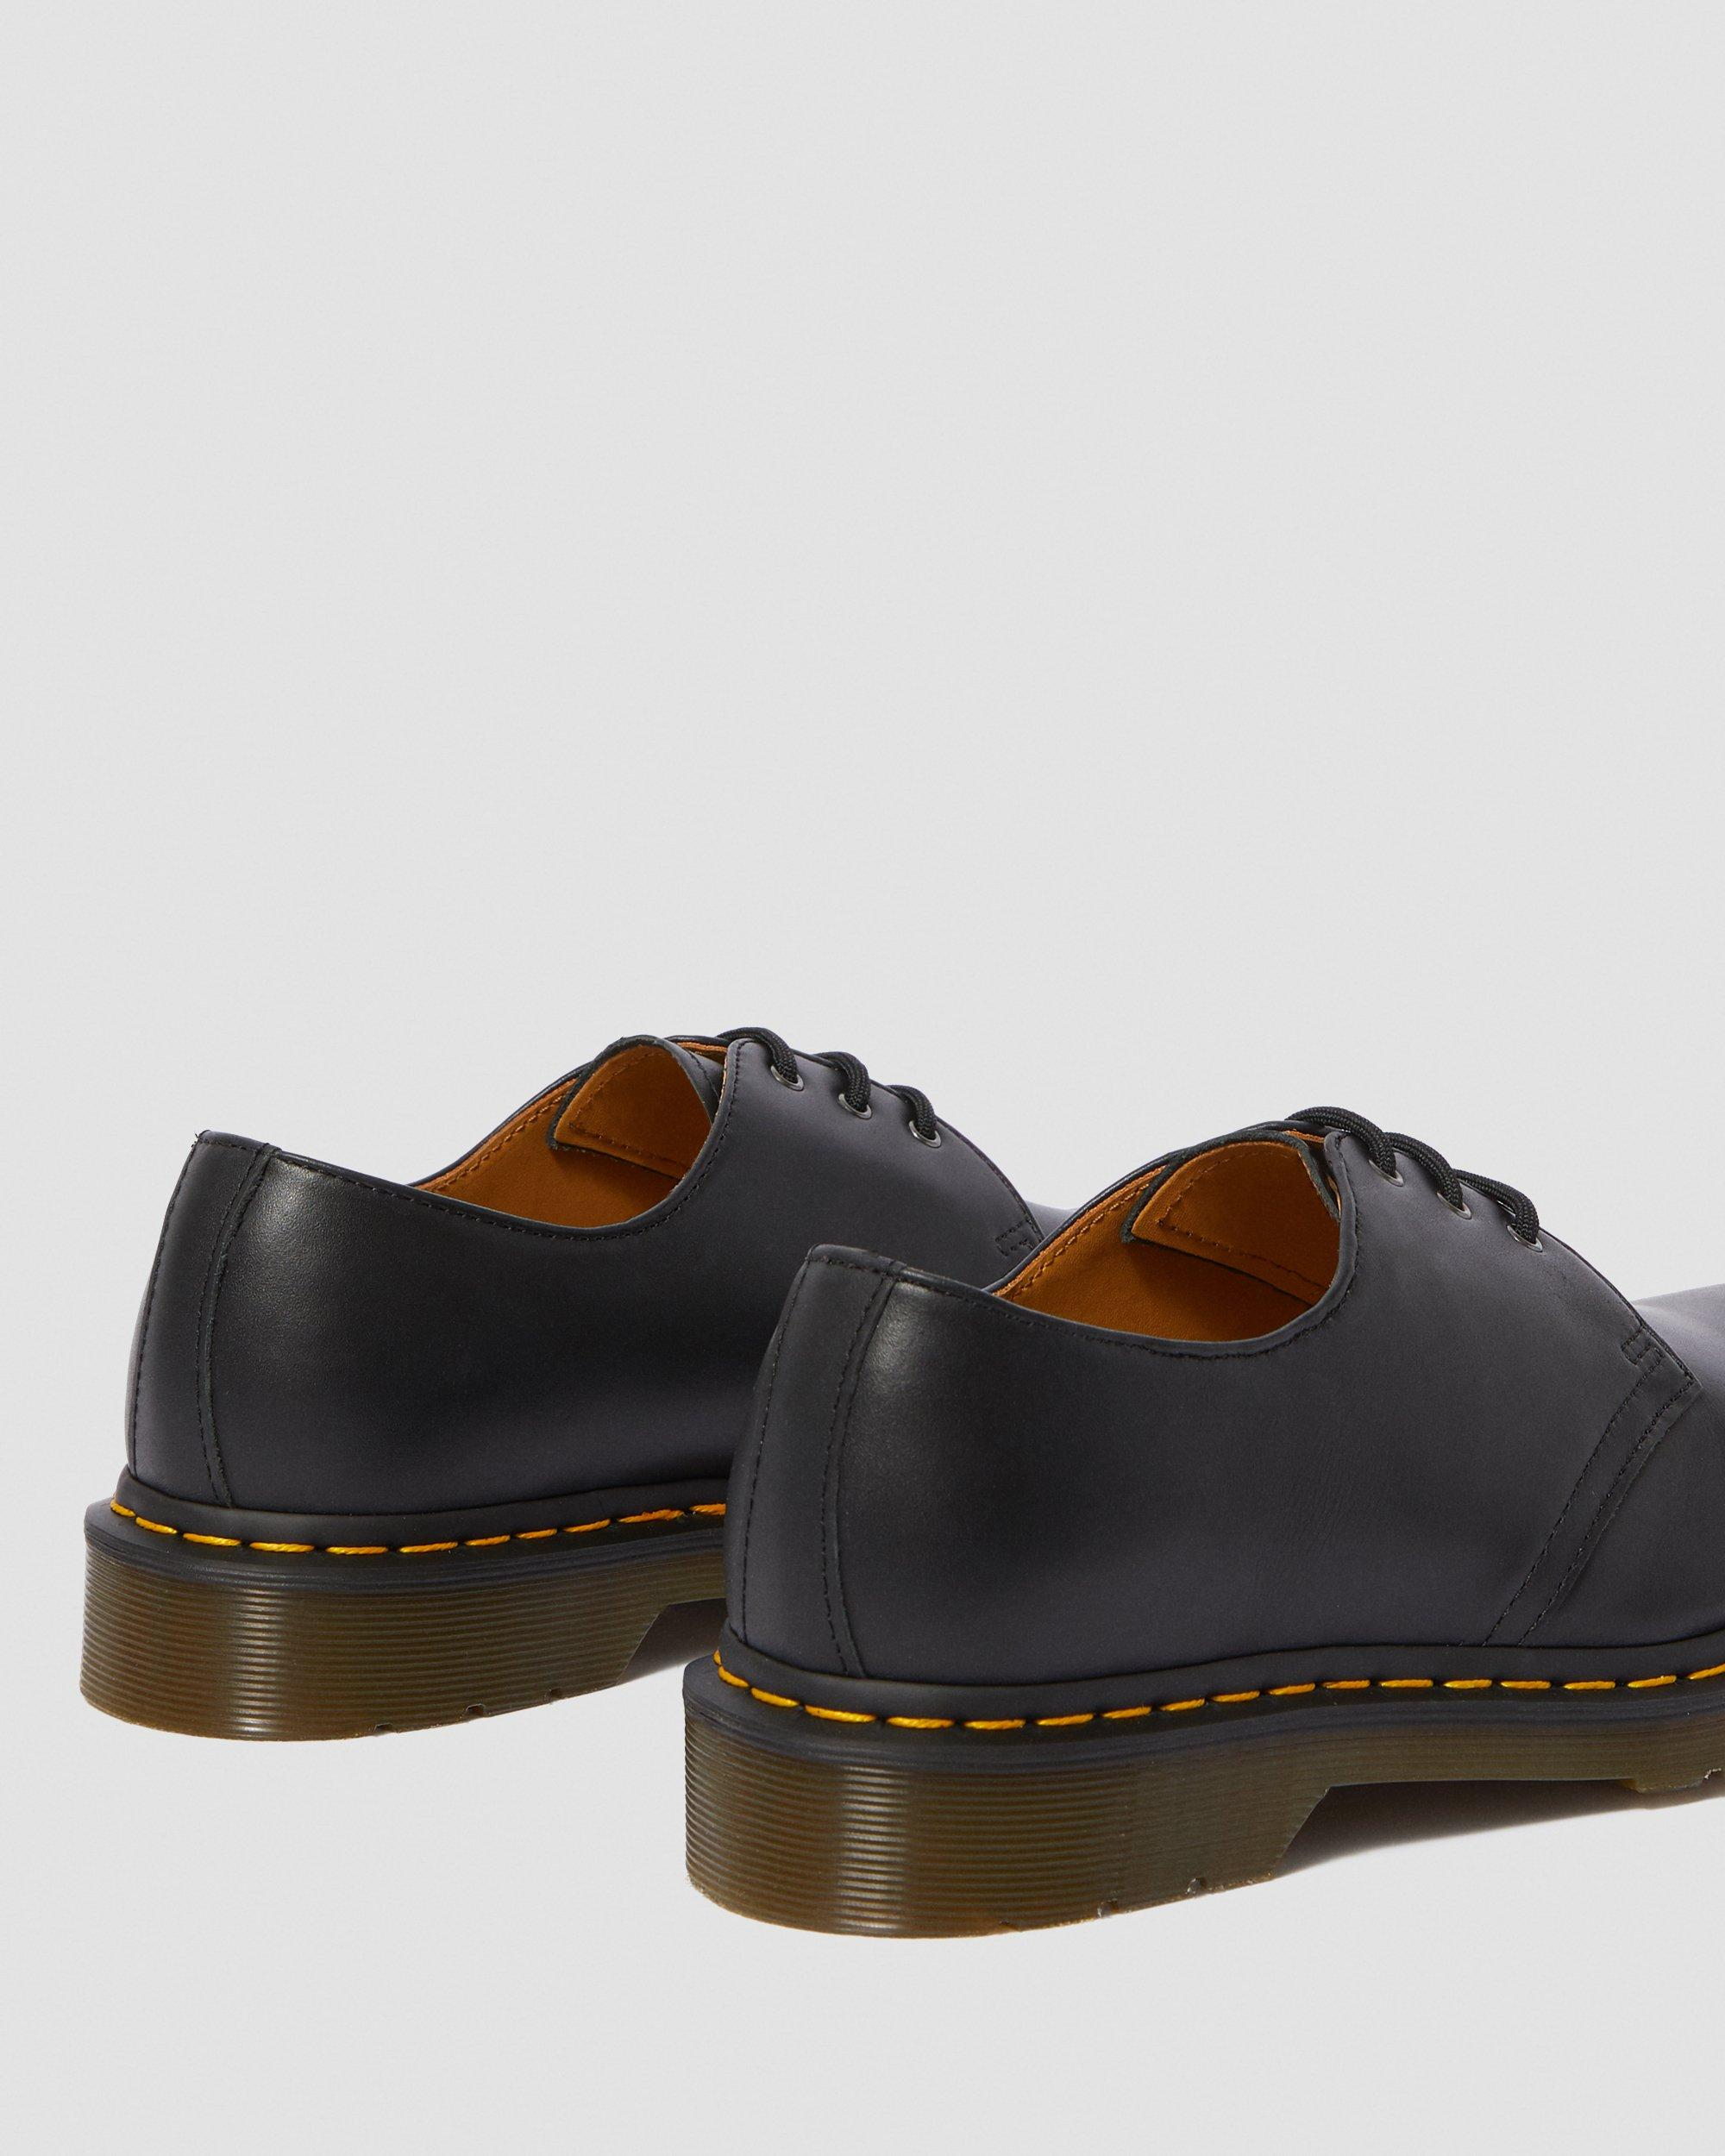 1461 NAPPA LEATHER OXFORD SHOES (BLACK